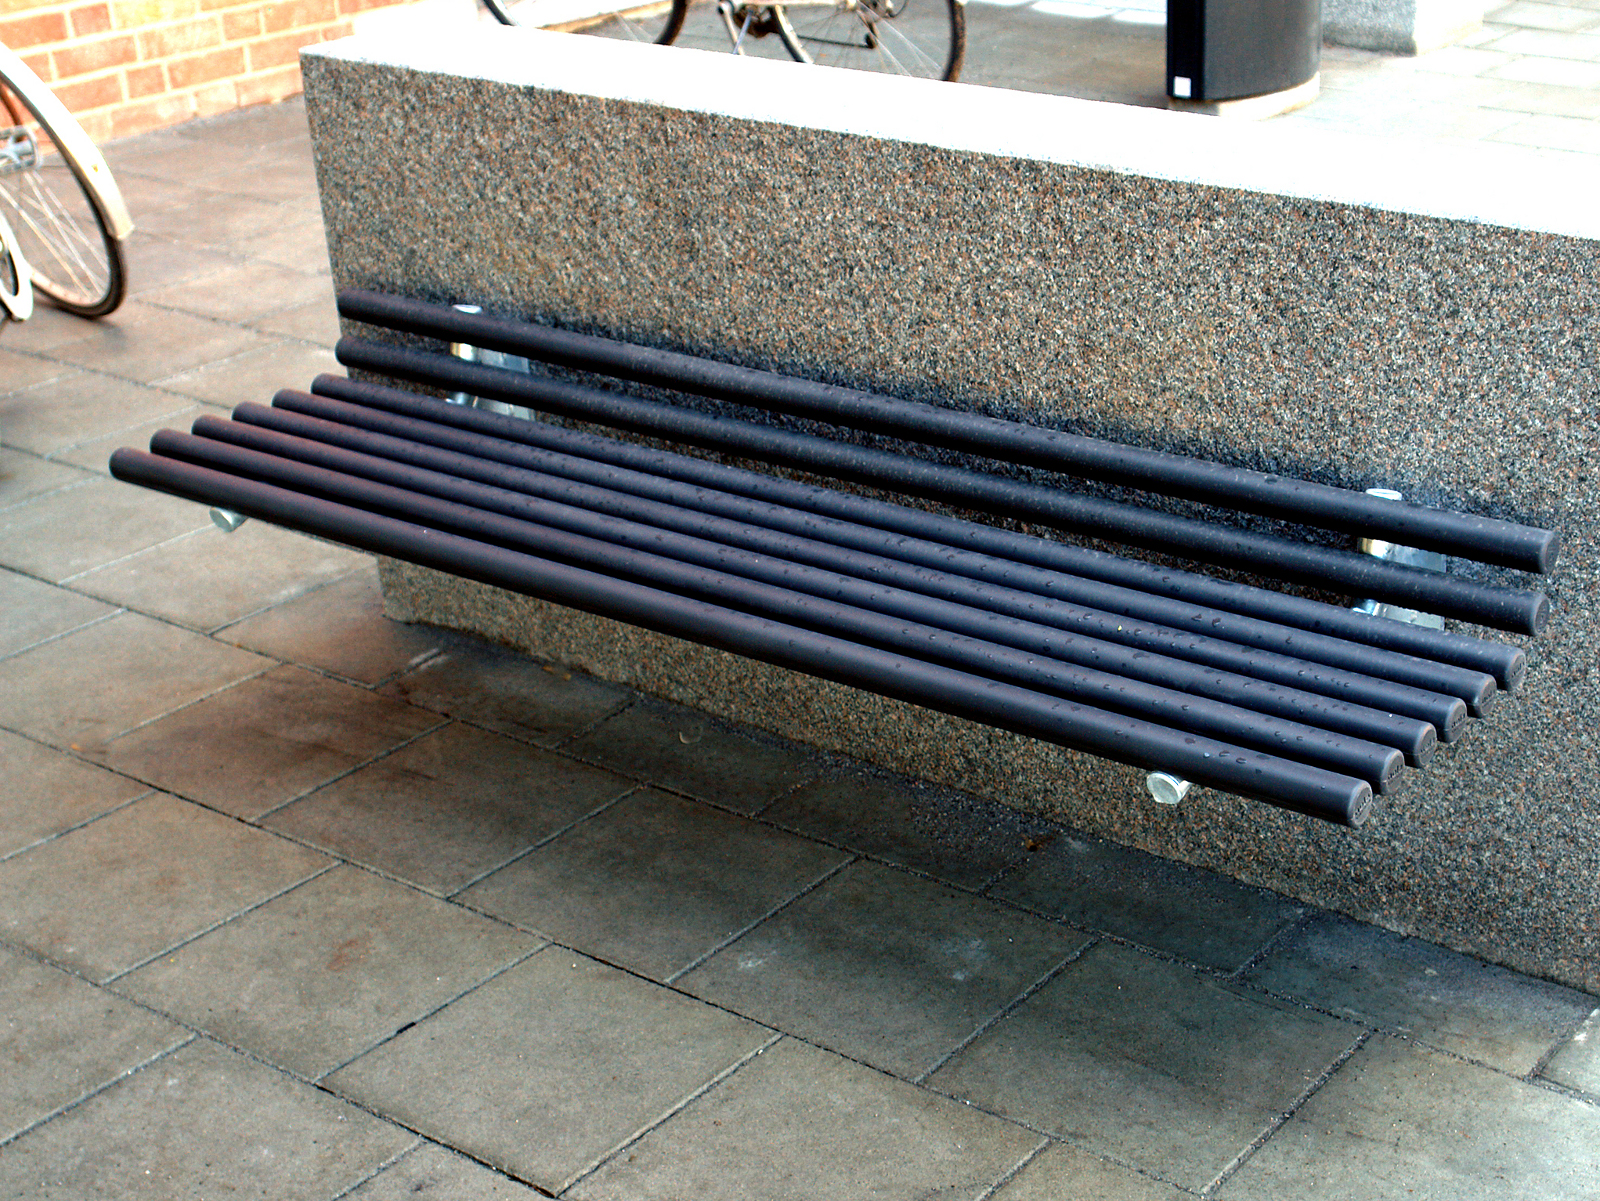 Wall Mounted Steel Bench Goal Collection By Nola Industrier Design Thomas Bernstrand